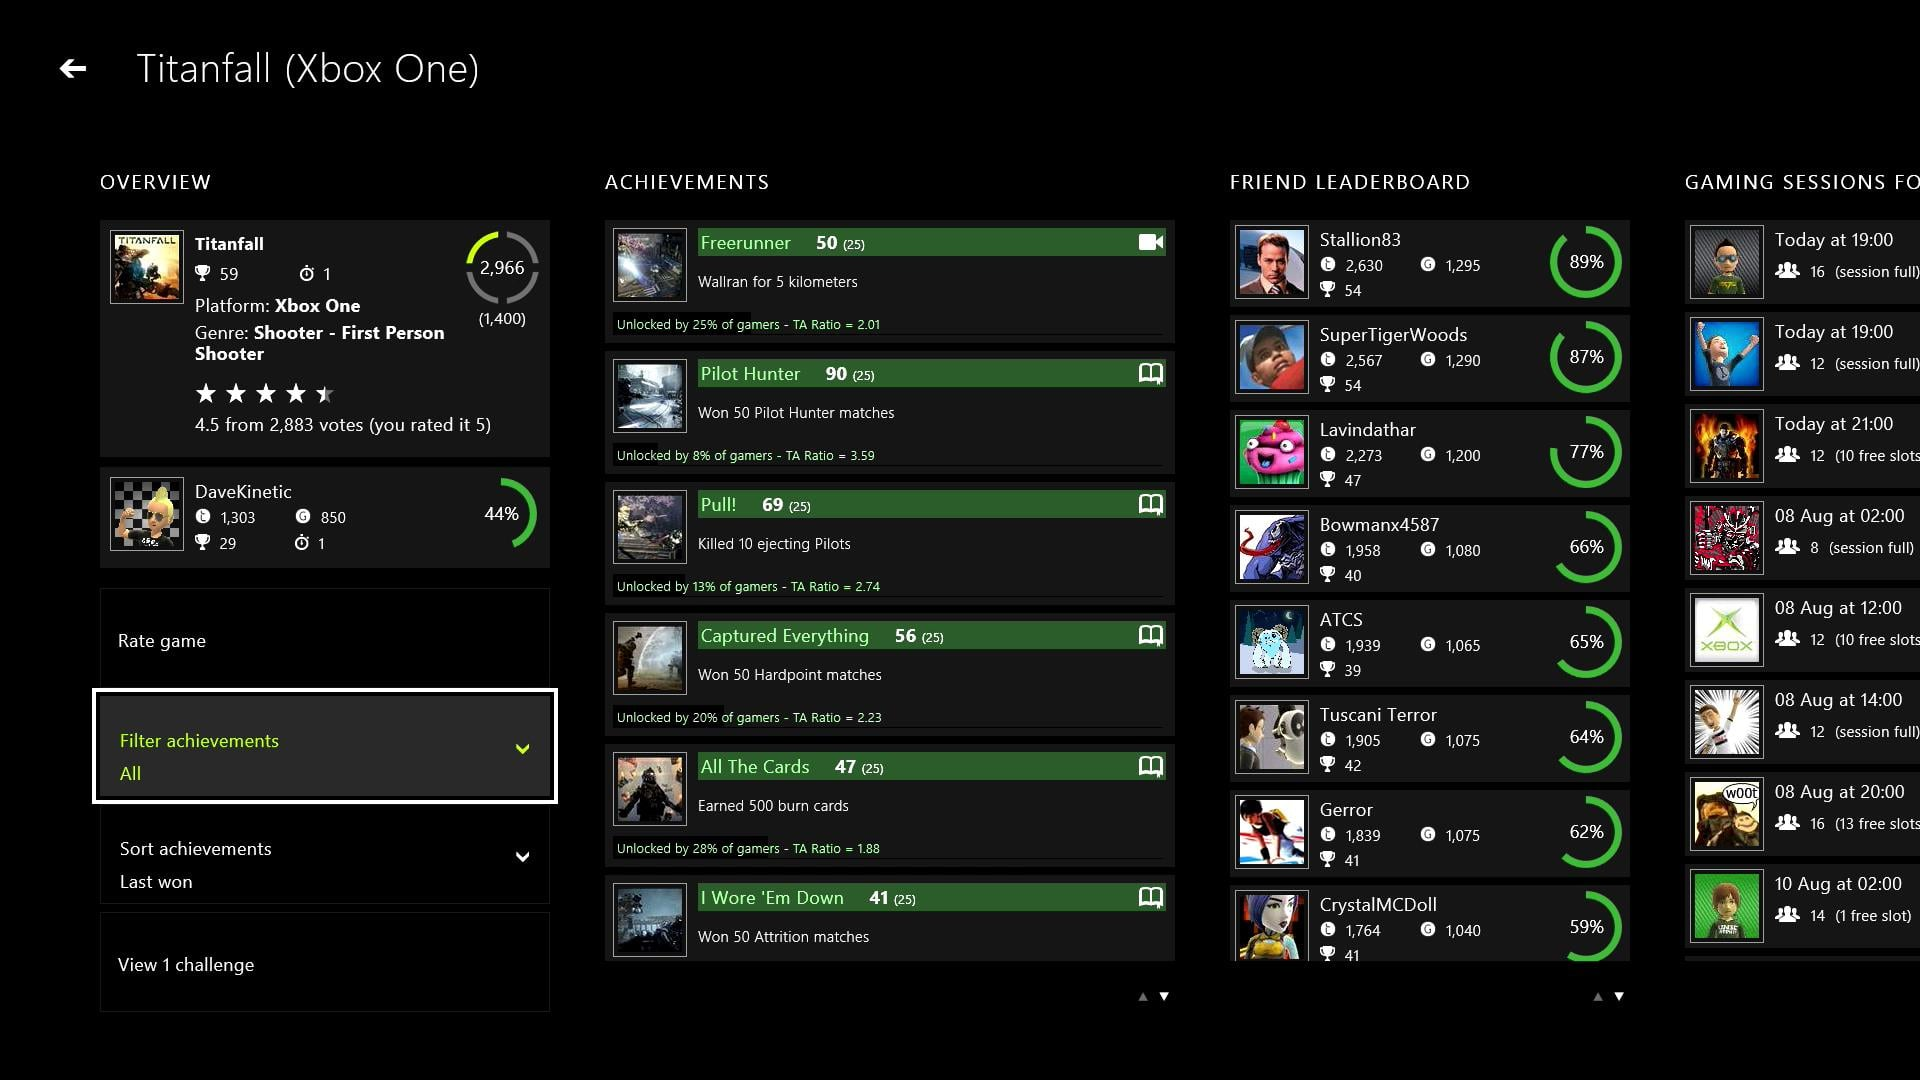 Xbox One Achievements Guide